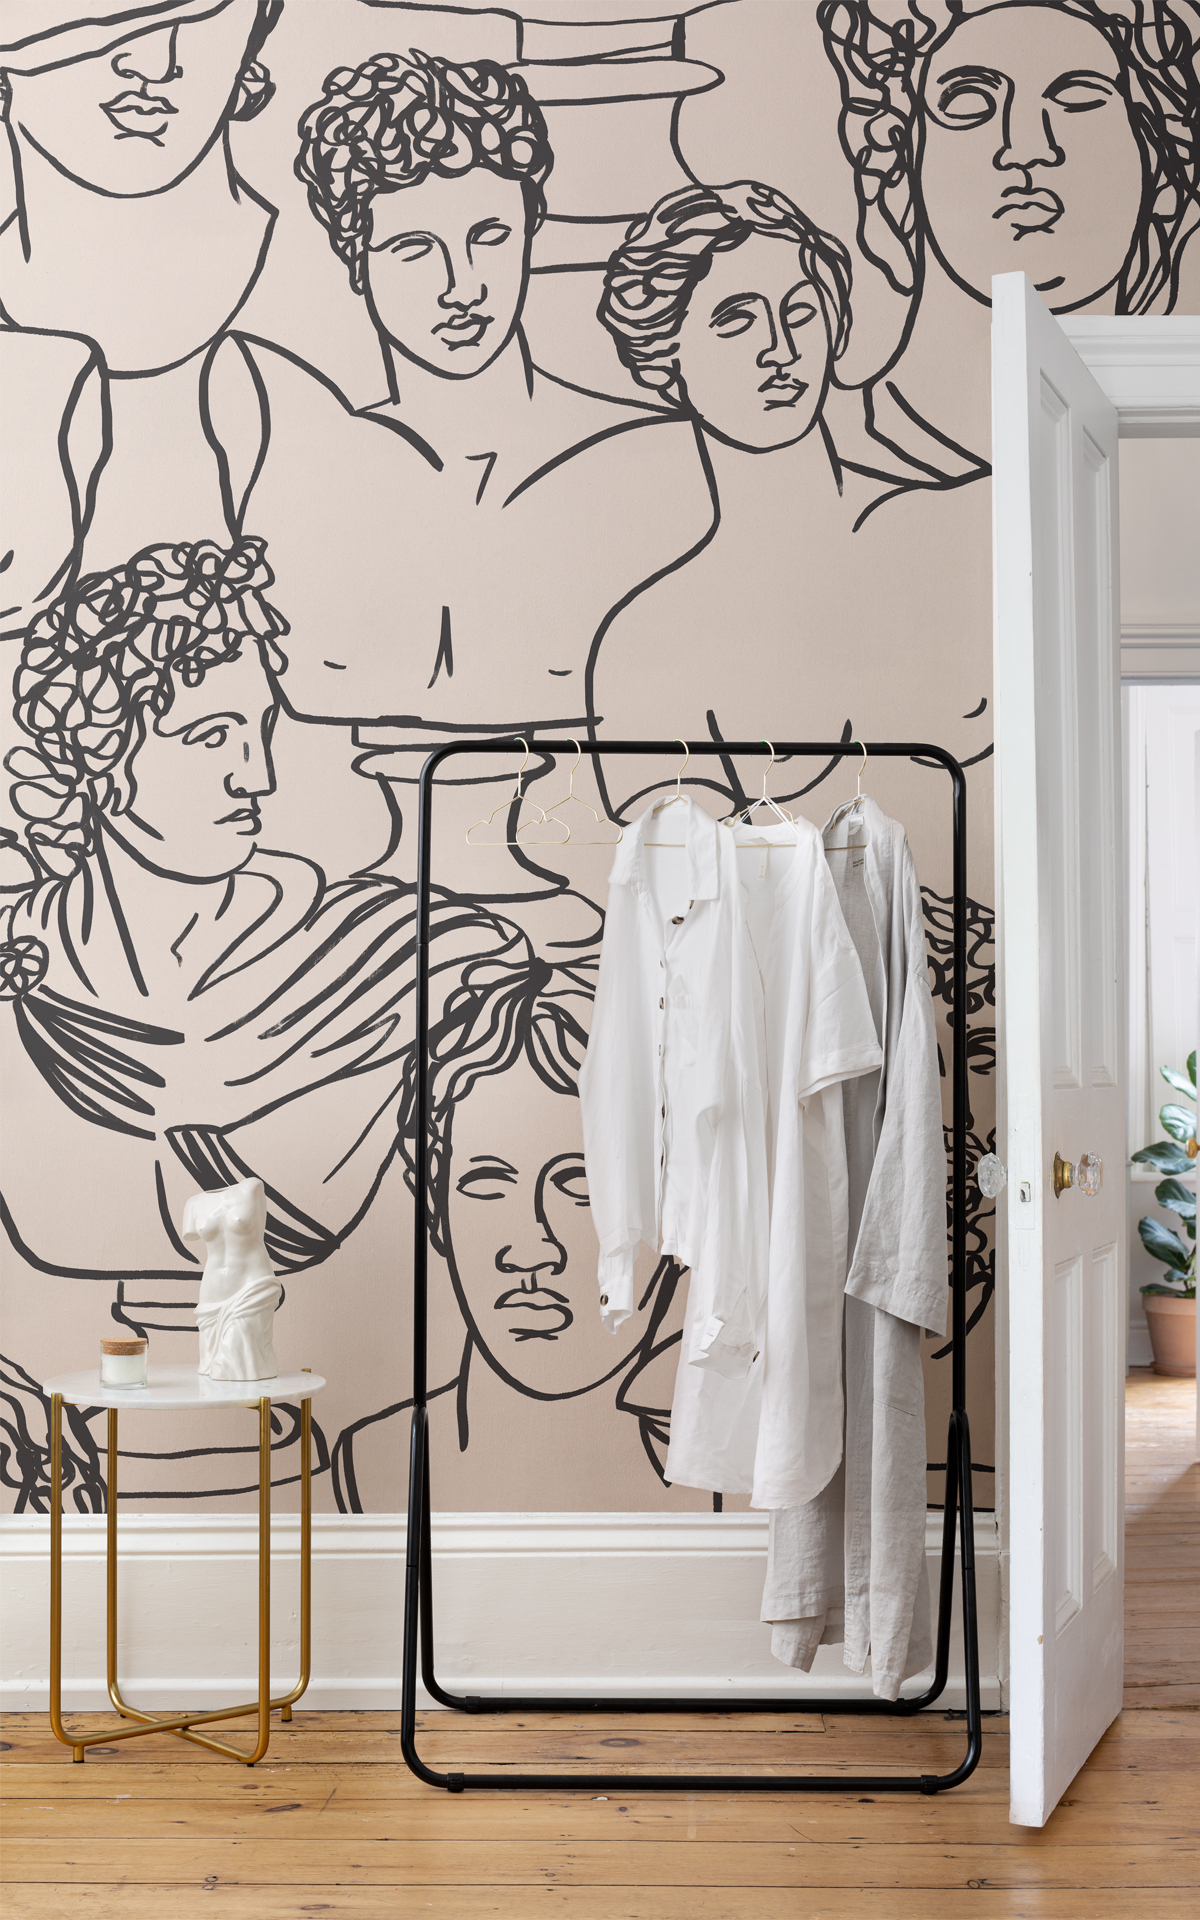 Olympia Ancient Greece statue wallpaper mural in room setting